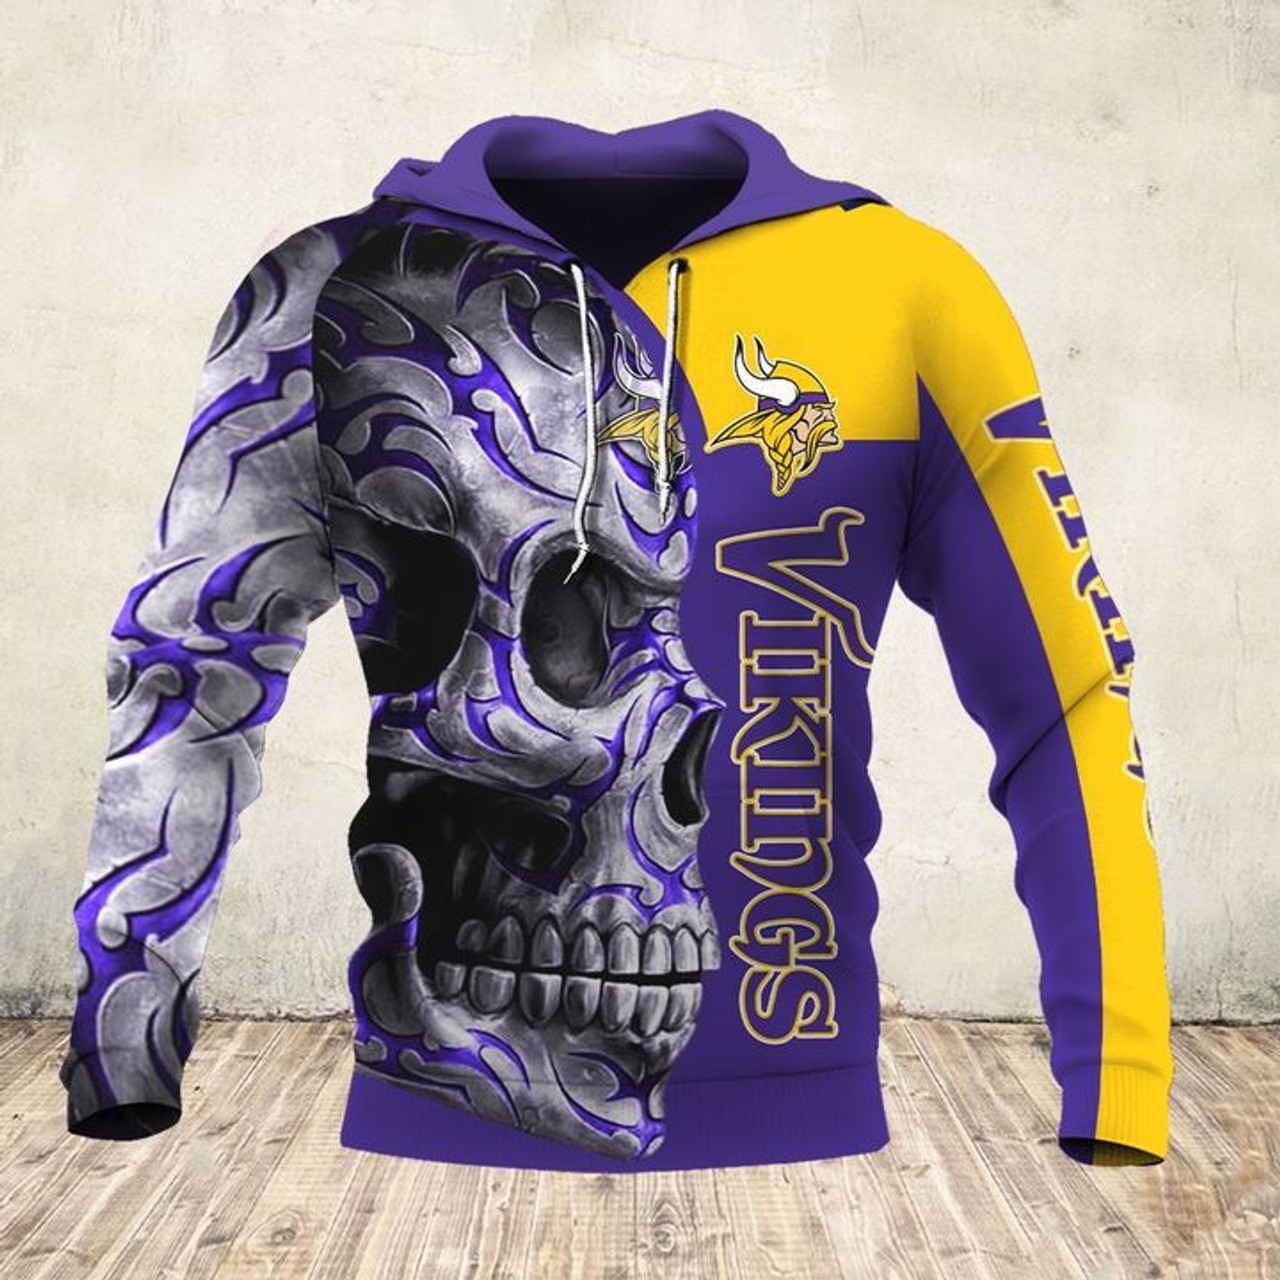 **(OFFICIAL-N.F.L.MINNESOTA-VIKINGS-PULLOVER-HOODIES & BIG-VIKINGS-TEAM-TRIBAL-SKULL/CUSTOM-3D-GRAPHIC-PRINTED-ALL-OVER-DOUBLE-SIDED-OFFICIAL-VIKINGS-TEAM-LOGOS & OFFICIAL-VIKINGS-TEAM-COLORS/WARM-PREMIUM-TRENDY-TEAM-DEEP-POCKET-PULLOVER-HOODIES)**